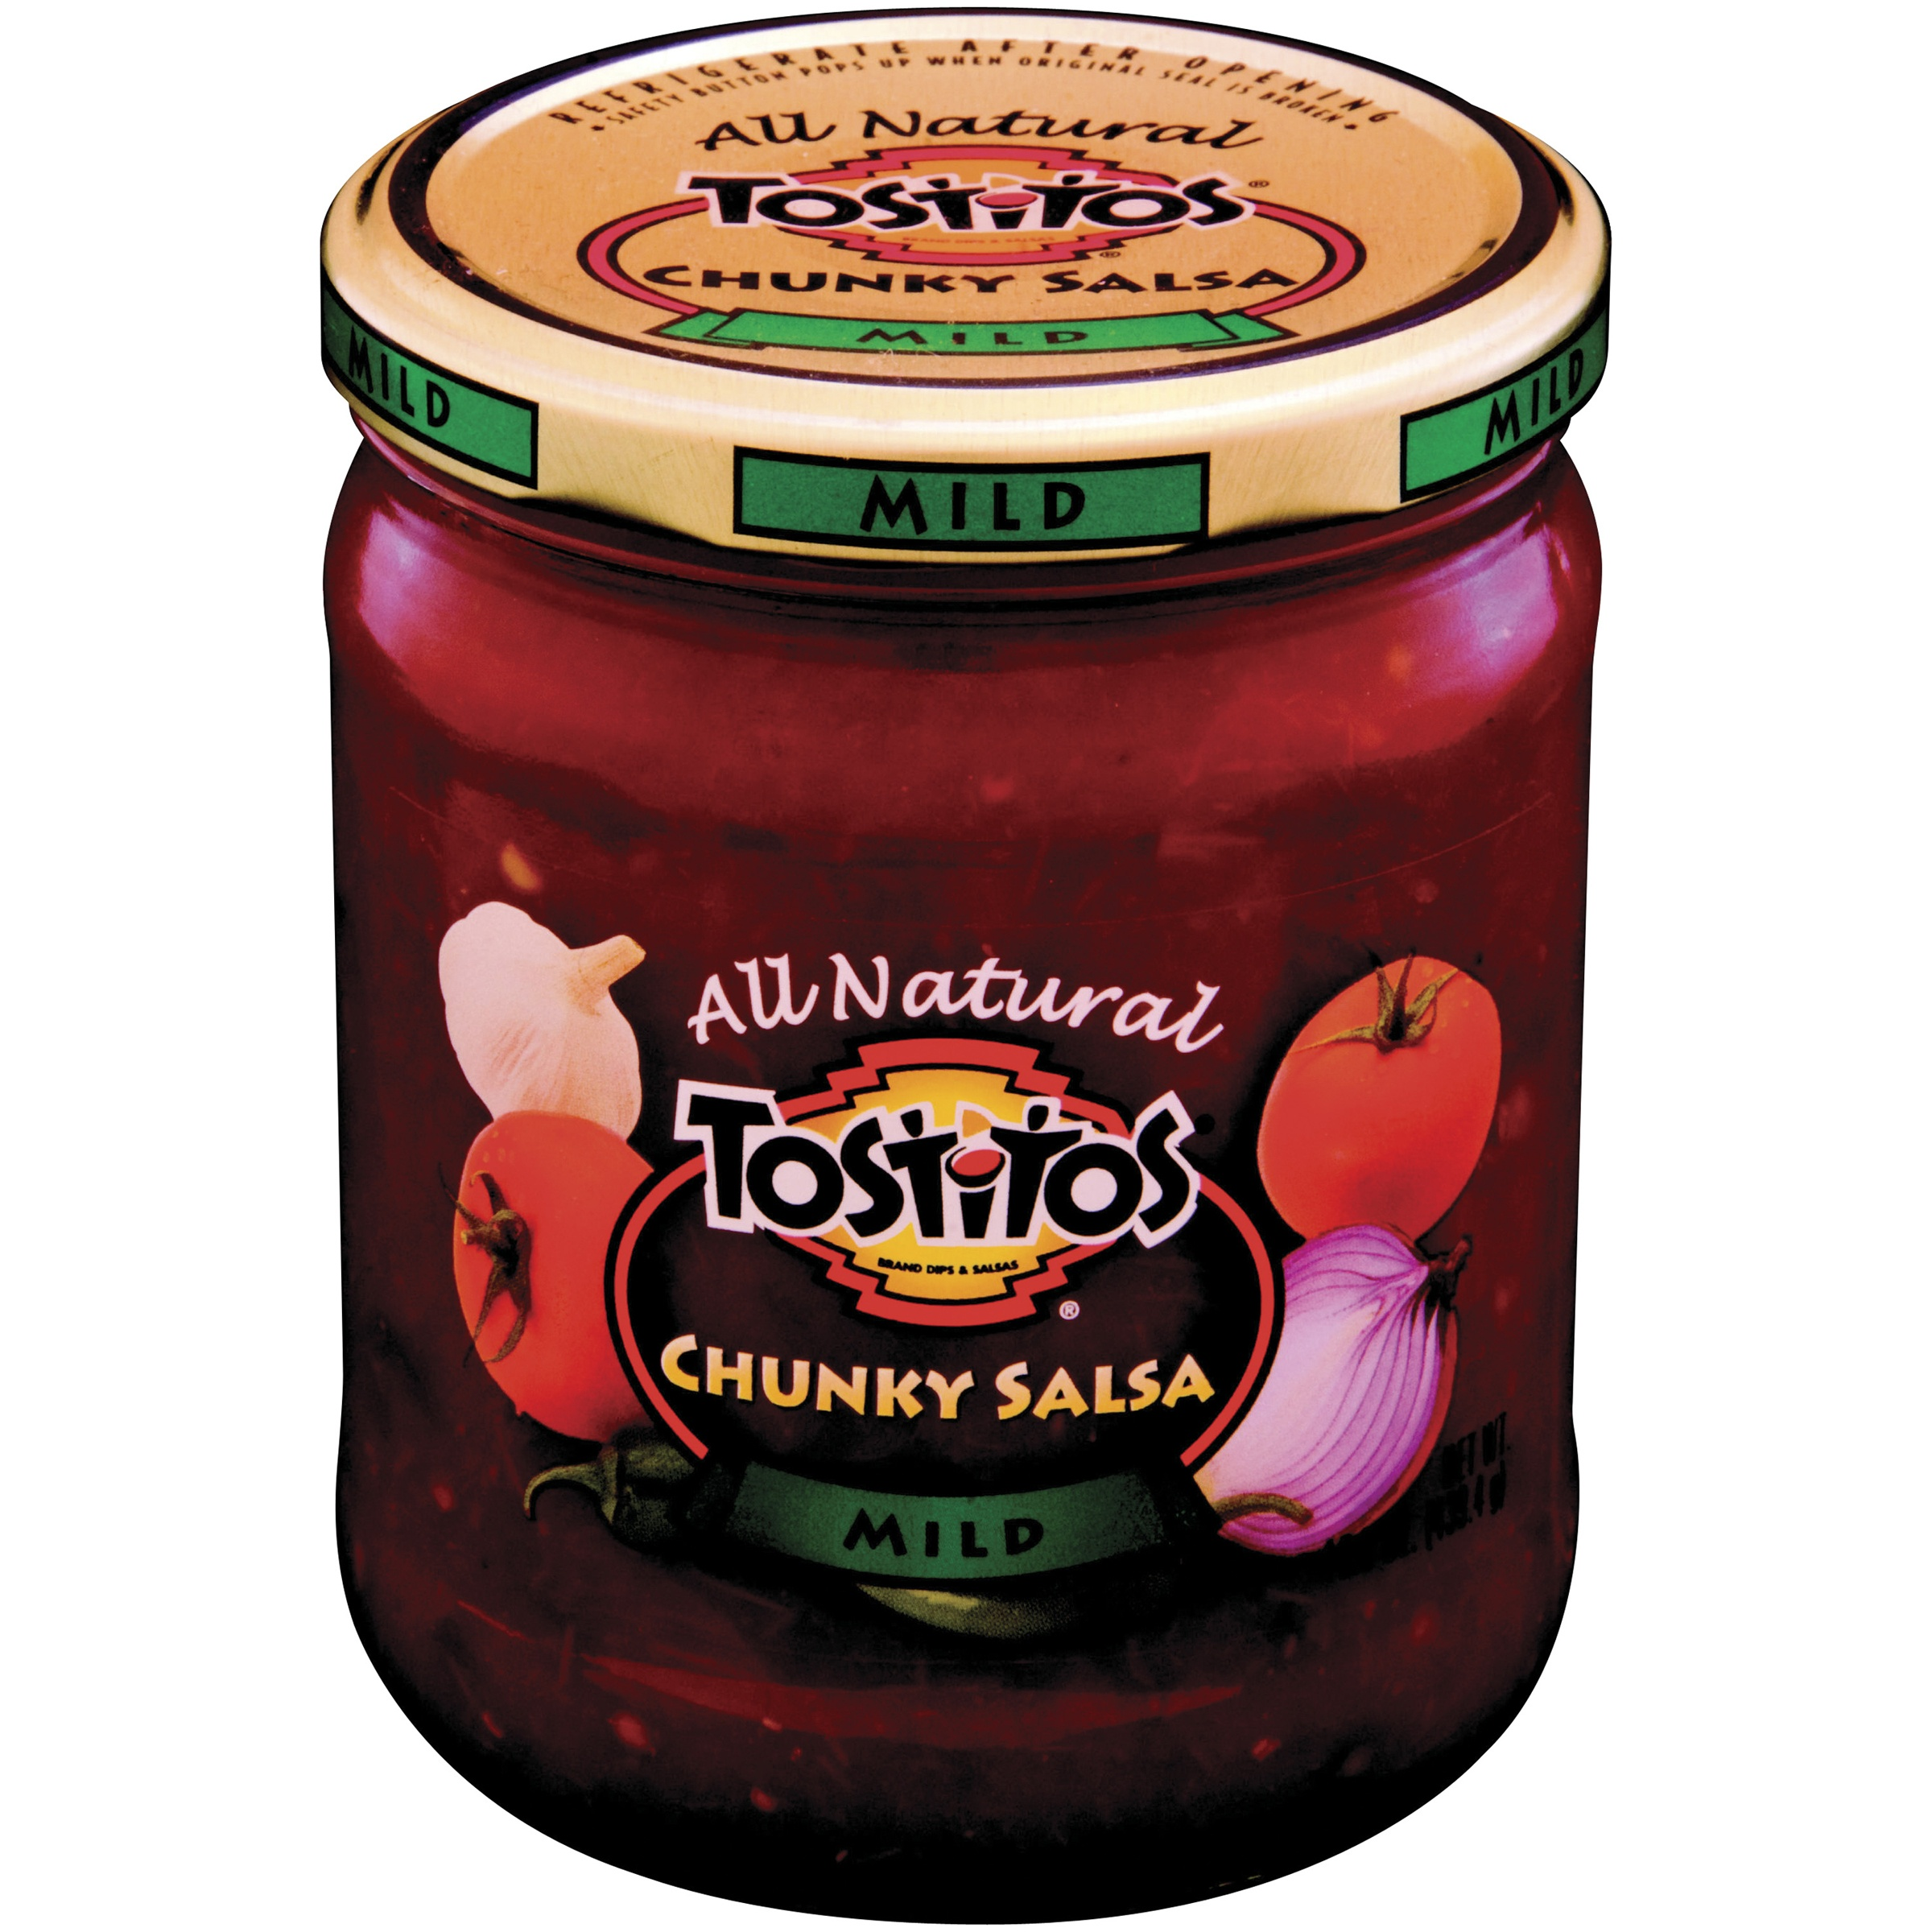 Tostitos All Natural Chunky Salsa, Mild, 15.5 oz. Jar